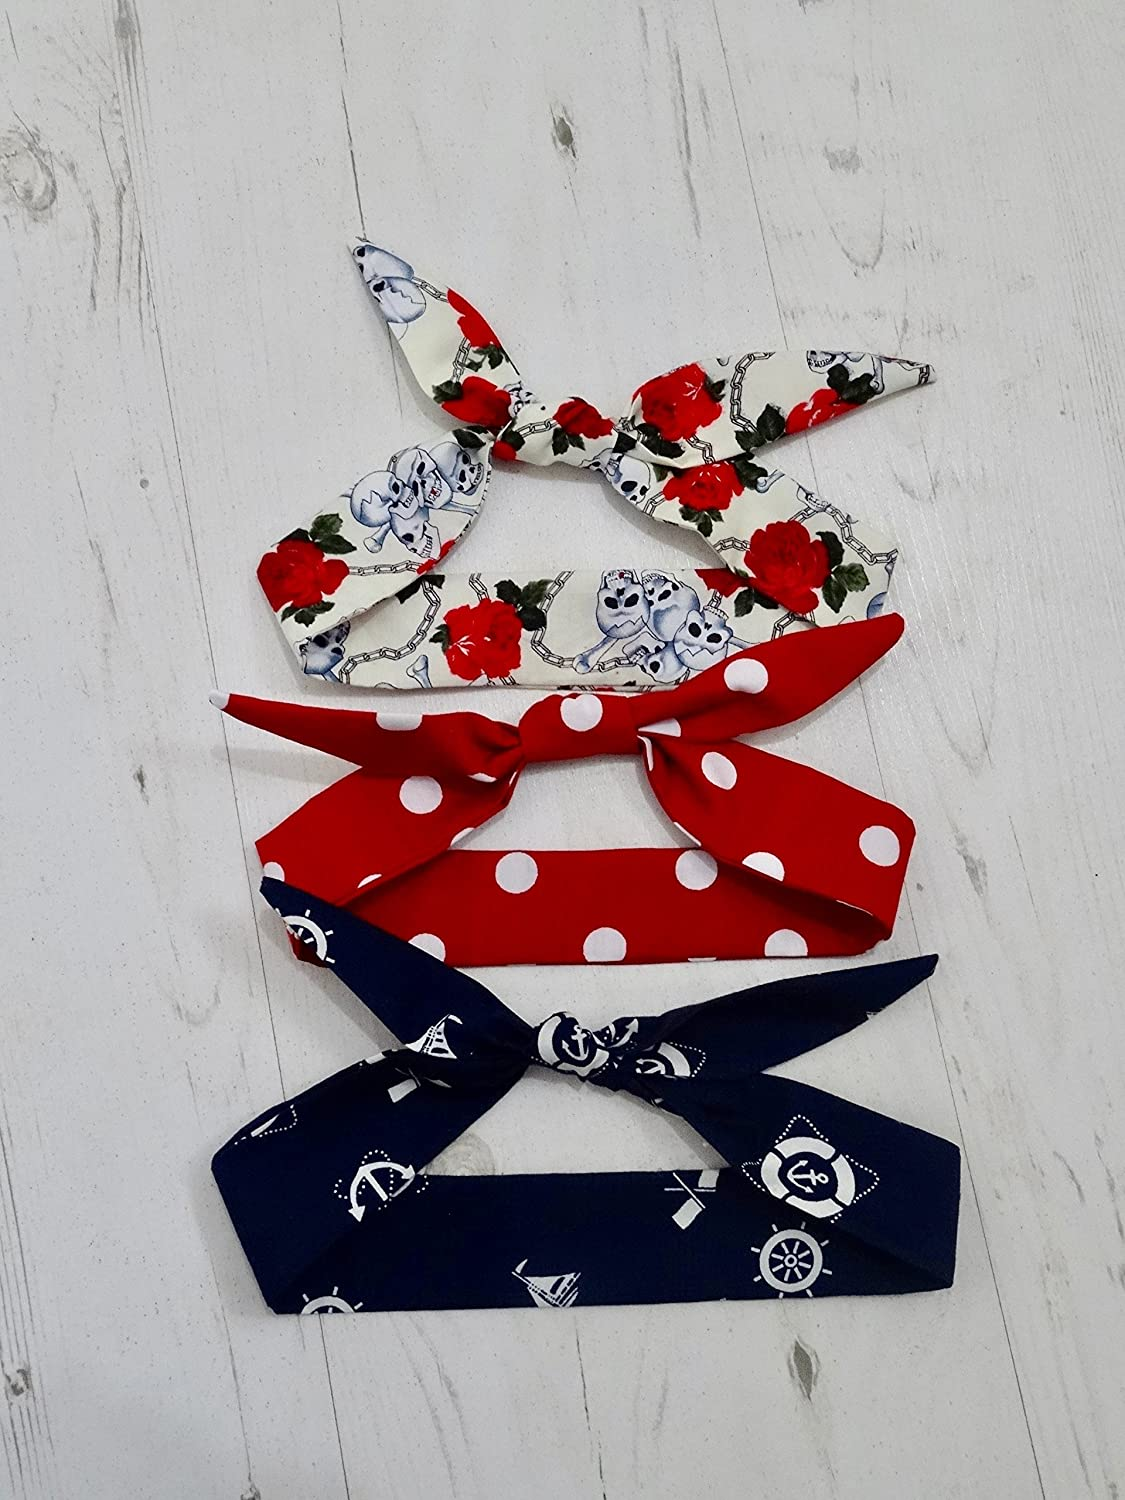 Baby Rockabilly 3 Head Scarf Set - Skull, Sailor and Polka Dot Tattoo - Cotton Shower Bandana Boy Girl Gift Unisex 1950s Pin Up Red